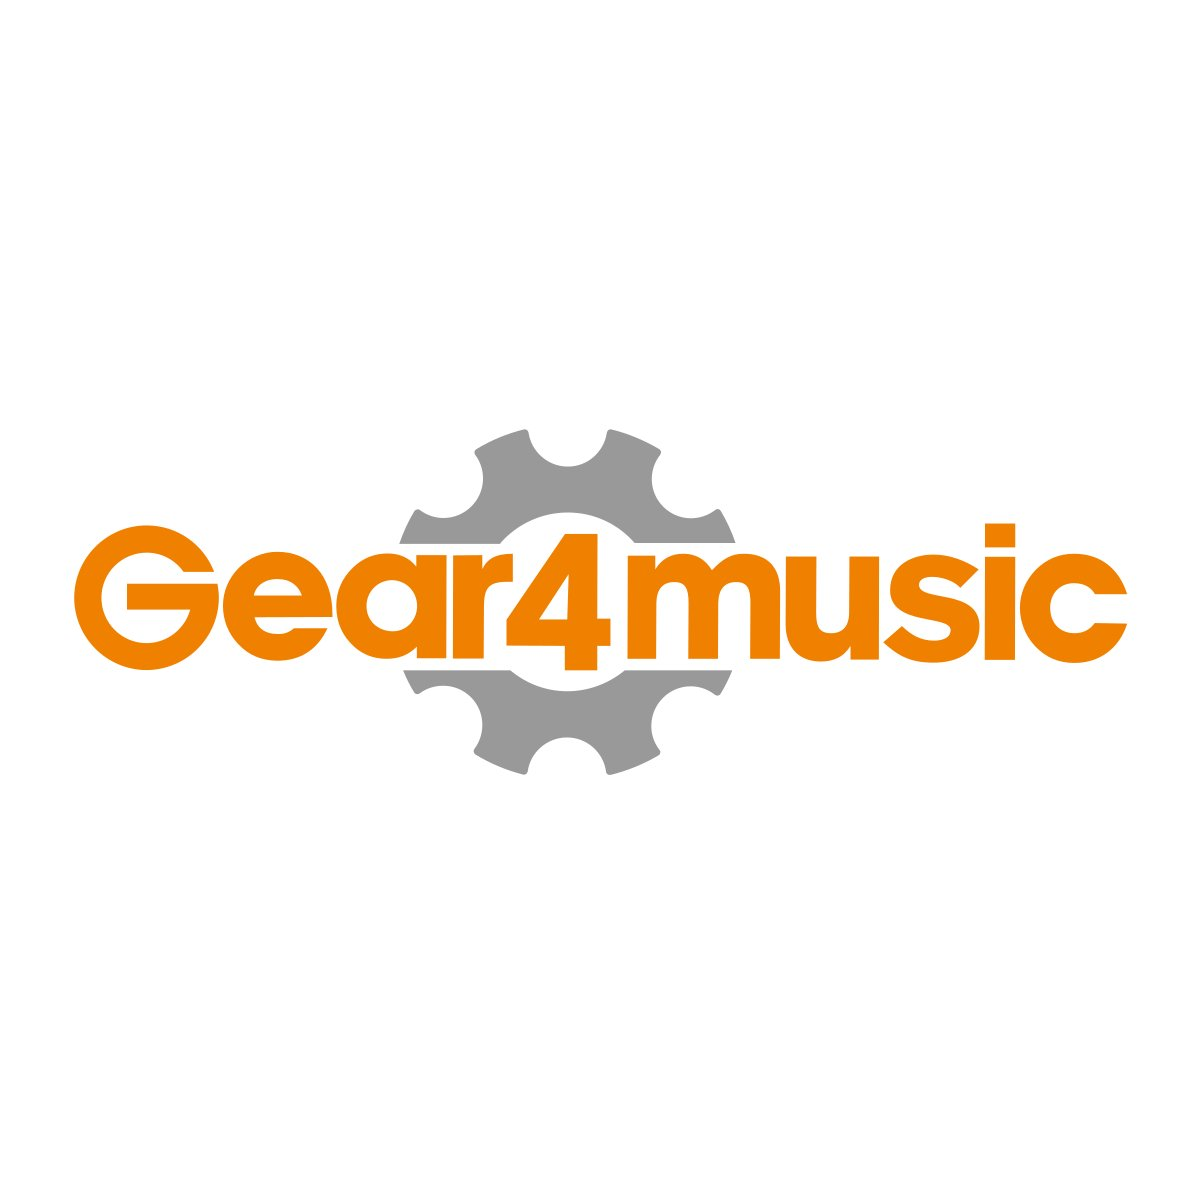 ROTOSOUND RH10 BLUE LIGHT TOP HEAVY BOTTOM ELECTRIC GUITAR STRINGS 10-52 2 PACKS